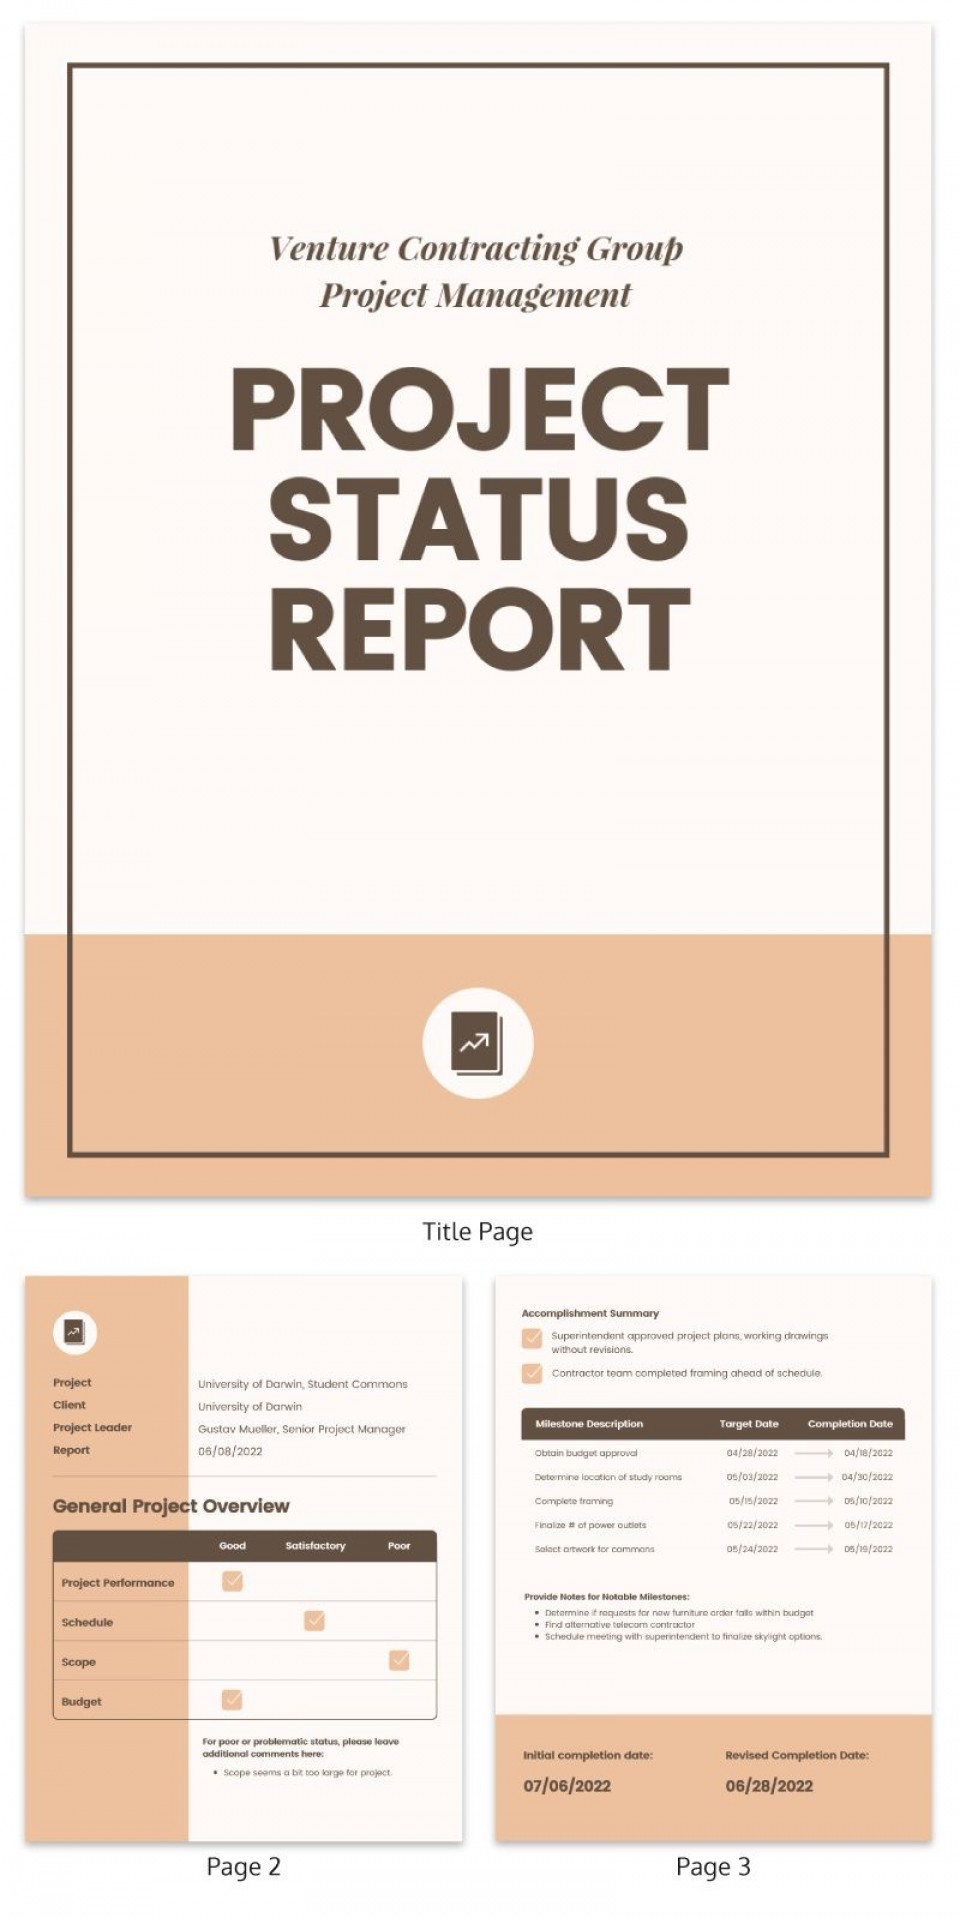 007 Top Project Management Report Template Free High Resolution  Word Weekly Statu Excel960